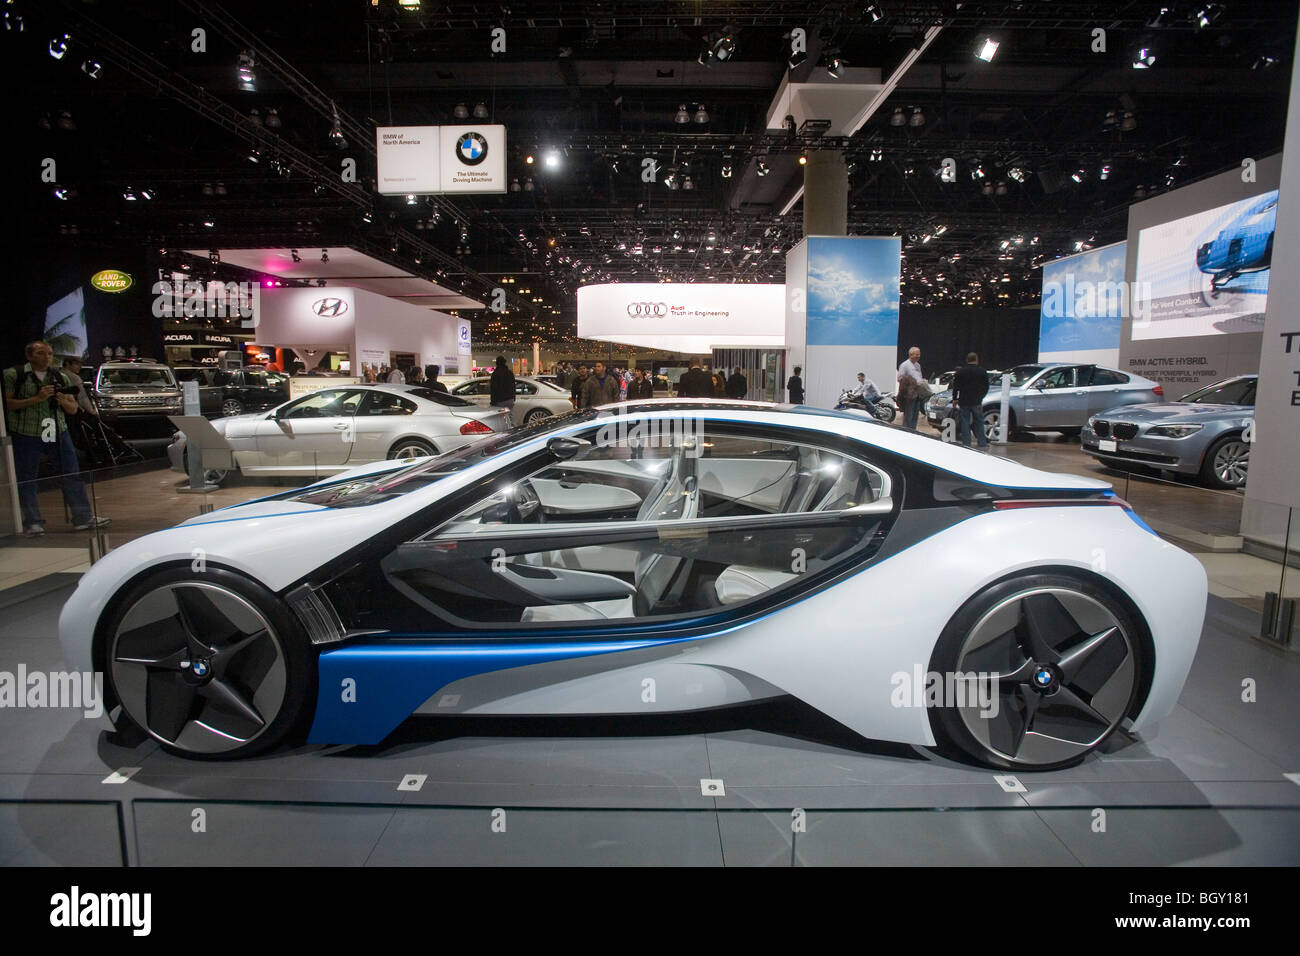 A BMW concept car, The Los Angeles Auto Show 2009 at the Los Angeles Convention Center, California, United States - Stock Image